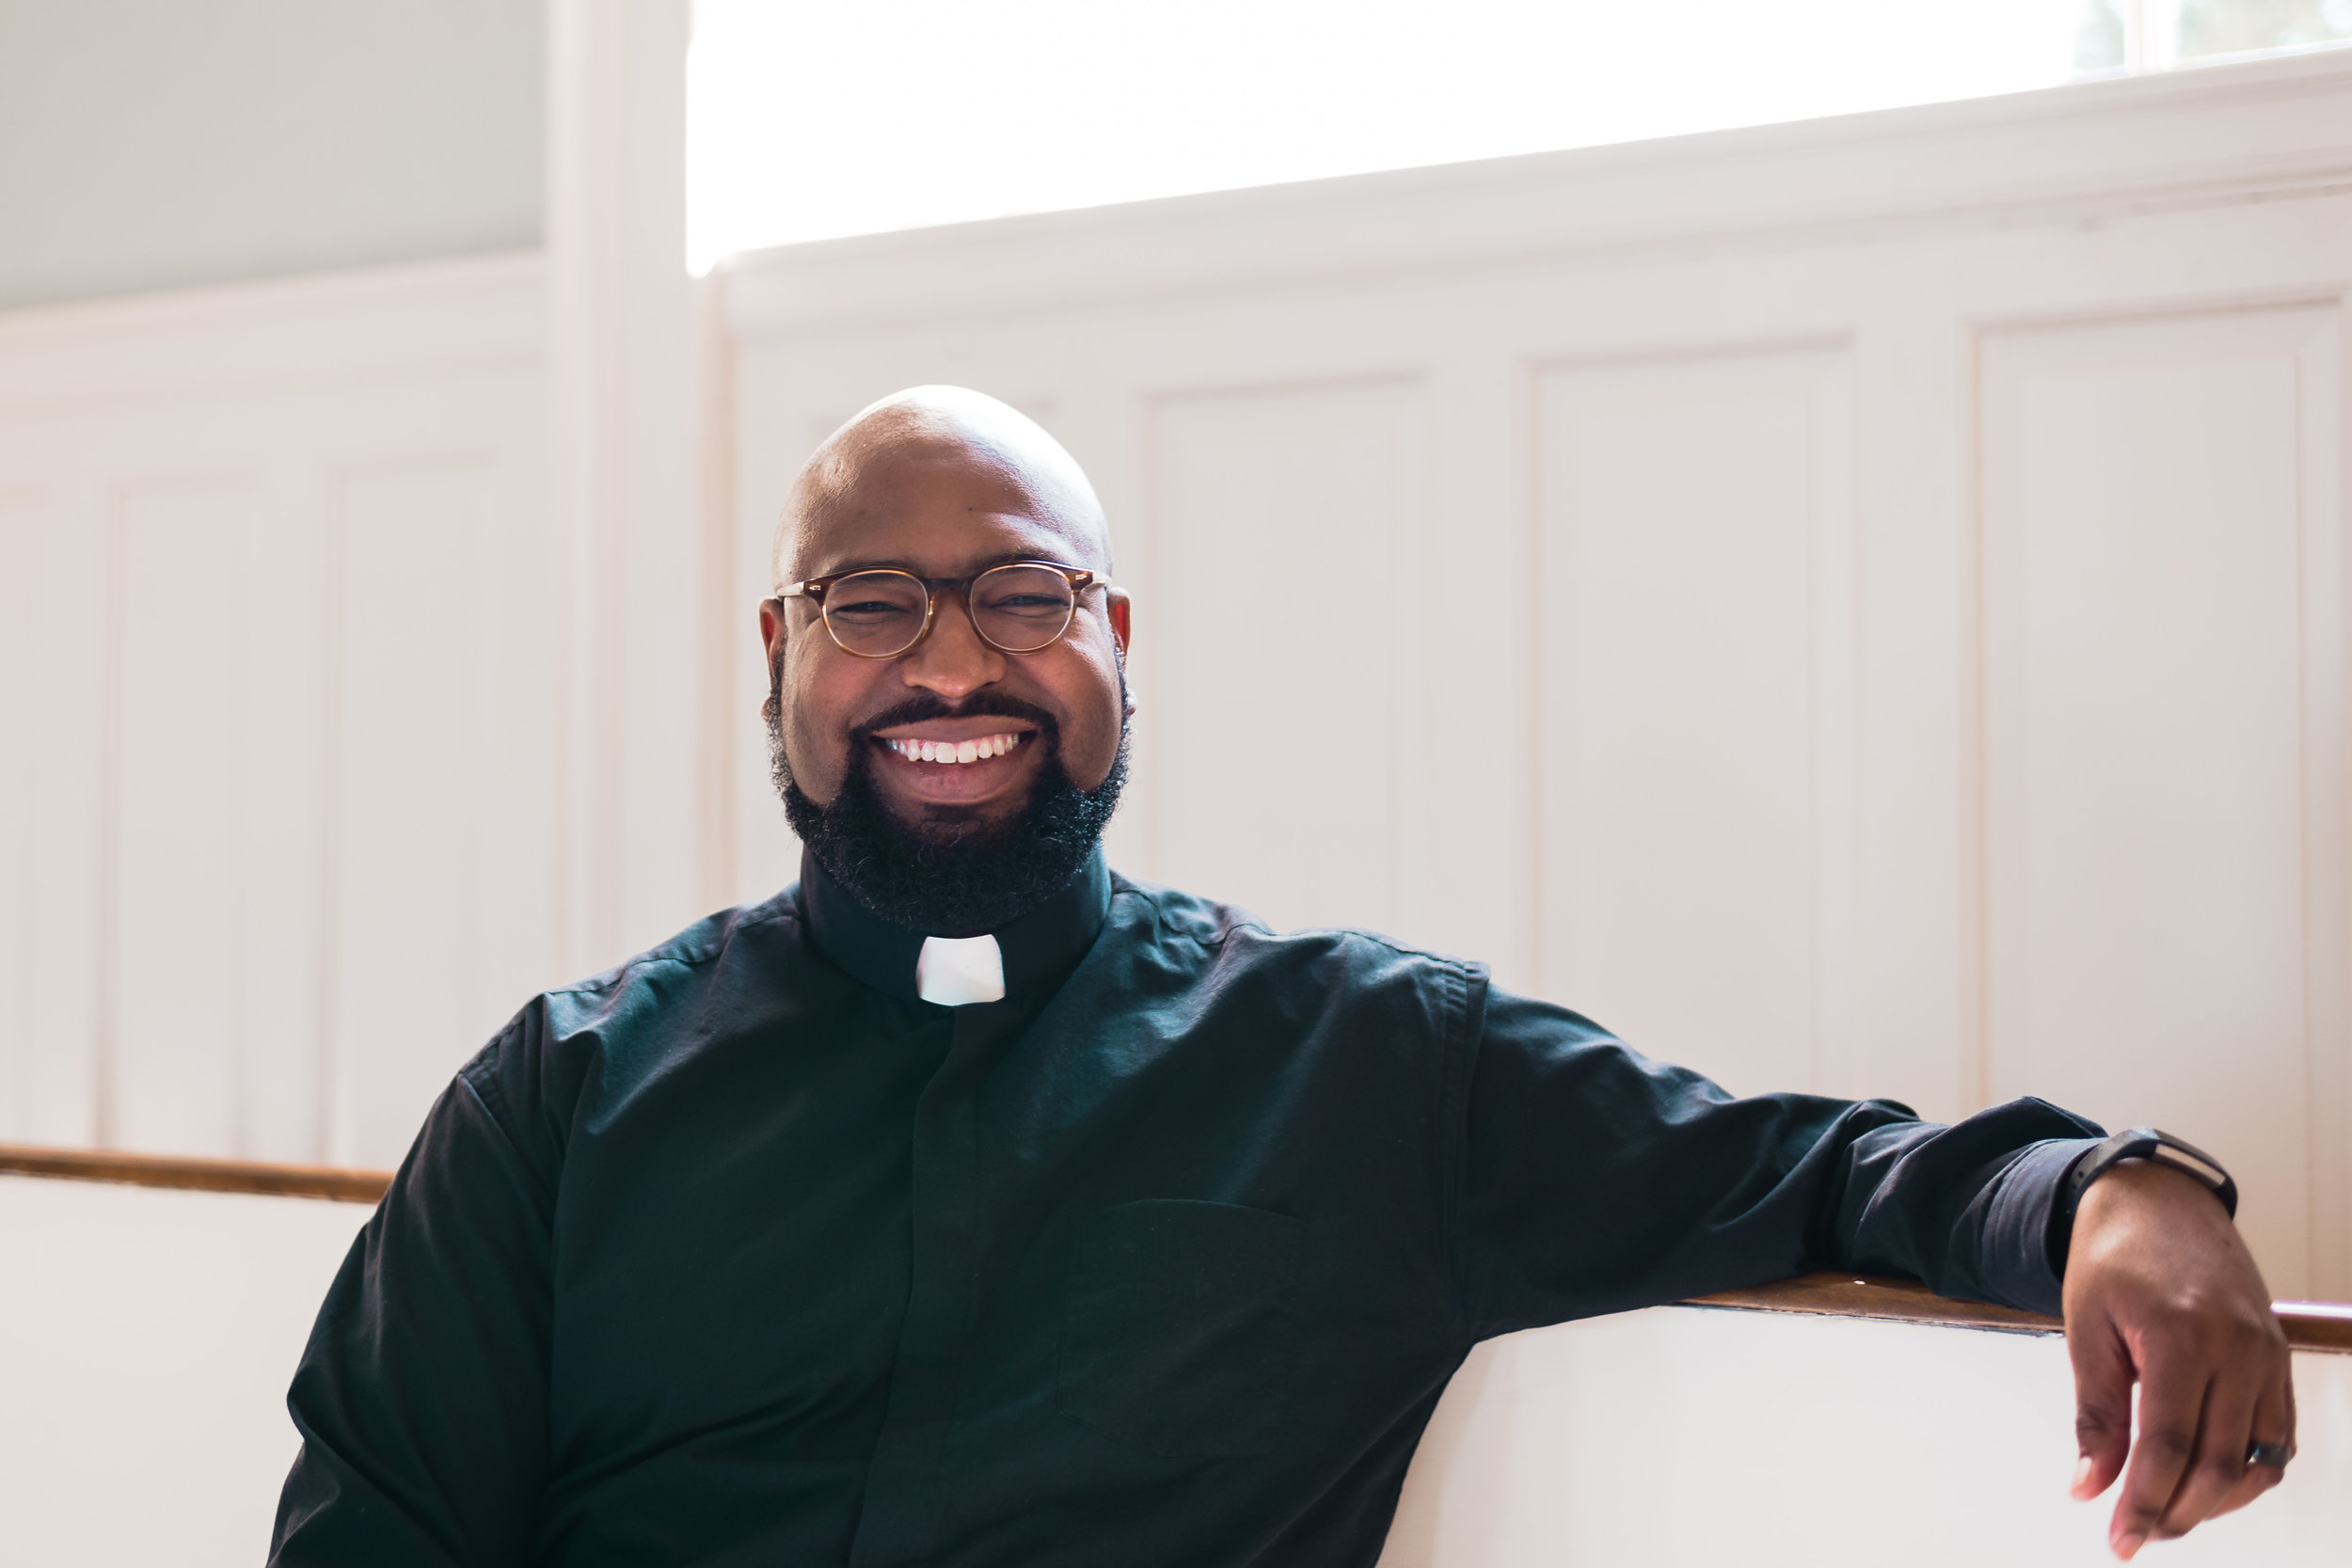 Rev. Justin Coleman - is the Senior Pastor of University UMC in Chapel Hill, NC. He grew up in Texas, and attended Southern Methodist University, graduating in 2000 with a major in religious studies. He, too, was very active in SMU's Wesley Foundation, and served as Associate Pastor at SMU's Wesley Foundation from 2001 to 2003 as he began seminary studies at SMU's Perkins School of Theology. Justin transferred to Duke Divinity School in 2003, and graduated with a Master of Divinity in 2005. Justin's first clergy appointment was to University UMC, as an intern in 2004 and then as Associate Pastor from 2005 to 2007.In 2007, Justin was called back to the Texas Annual Conference of the United Methodist Church, where he is an elder, and was appointed Associate Pastor at St. Luke's United Methodist Church in Houston, Texas. For six years from 2008 to 2014, Justin served as the Executive and Lead Pastor of the Gethsemane Campus of St. Luke's Church and led it through a remarkable period of growth in ministry and service to its community.From 2014 to June 2017 Justin served as the Chief Ministry Officer of the United Methodist Publishing House in Nashville, Tennessee. During this time he has also continued to frequently offer lectures, sermons, and lead worship.Justin and his wife Chaka live in Chapel Hill with their three sons, Zan, Max, and Lawson.